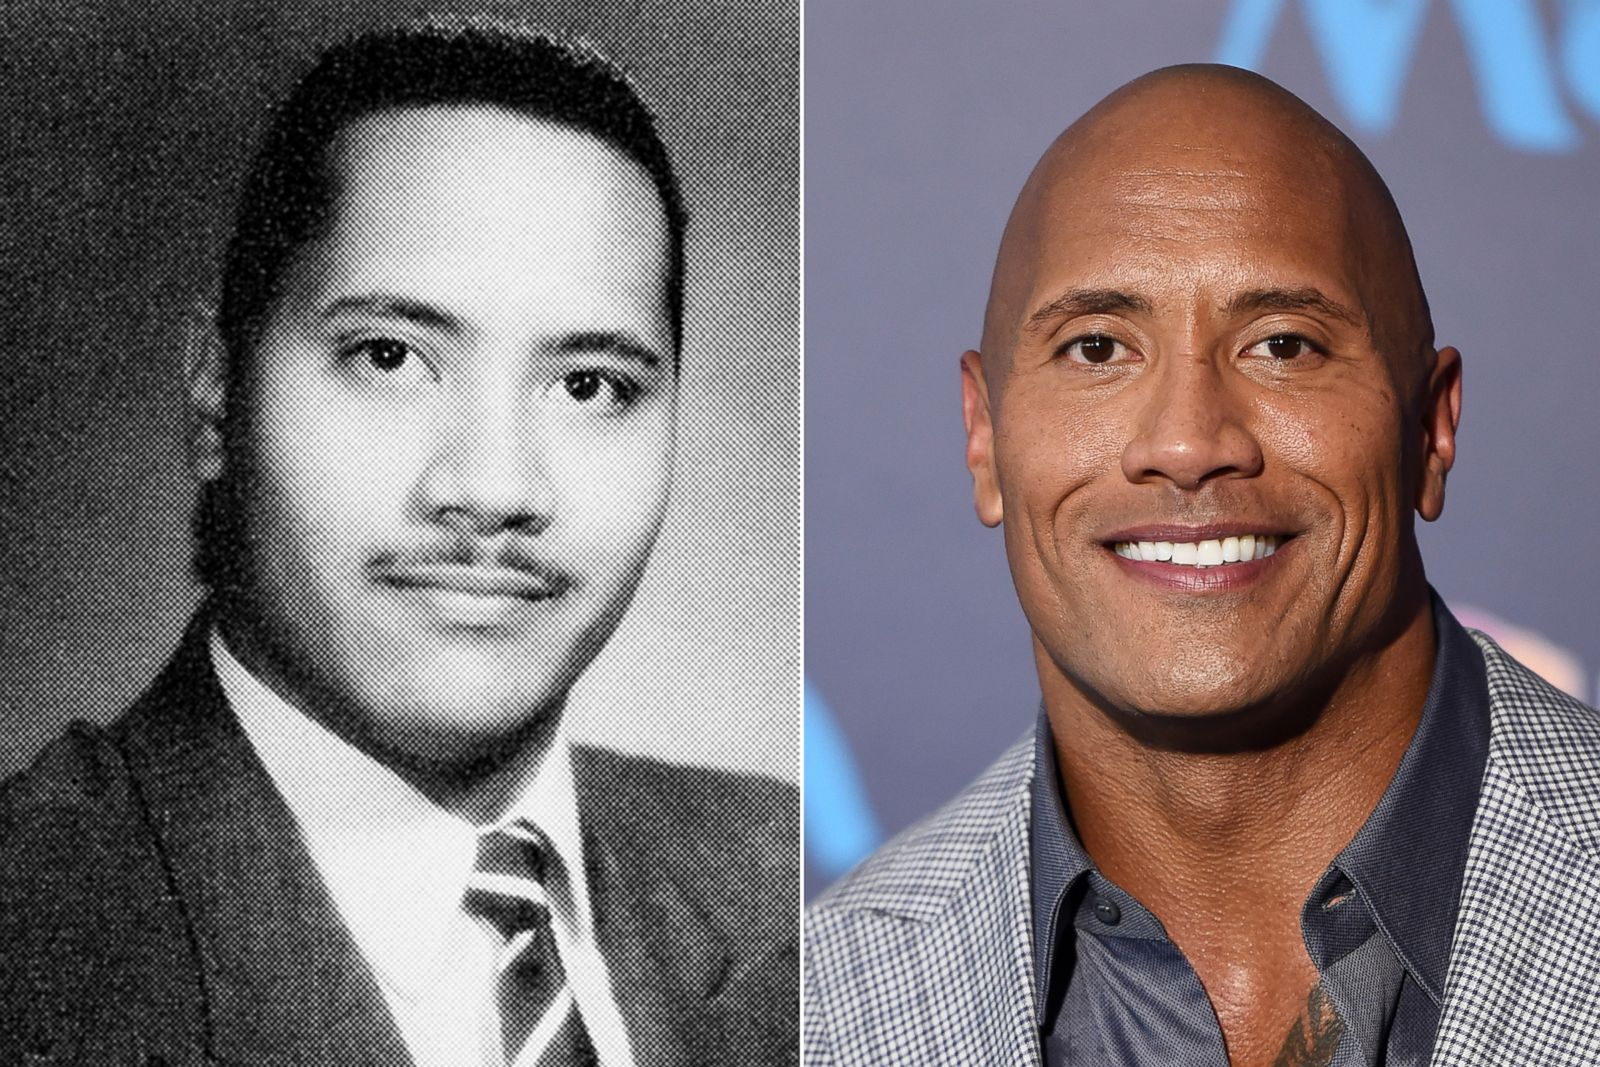 ' ' from the web at 'https://s.abcnews.com/images/Entertainment/HT_GTY_dwayne-johnson-ml-170502_3x2_1600.jpg'